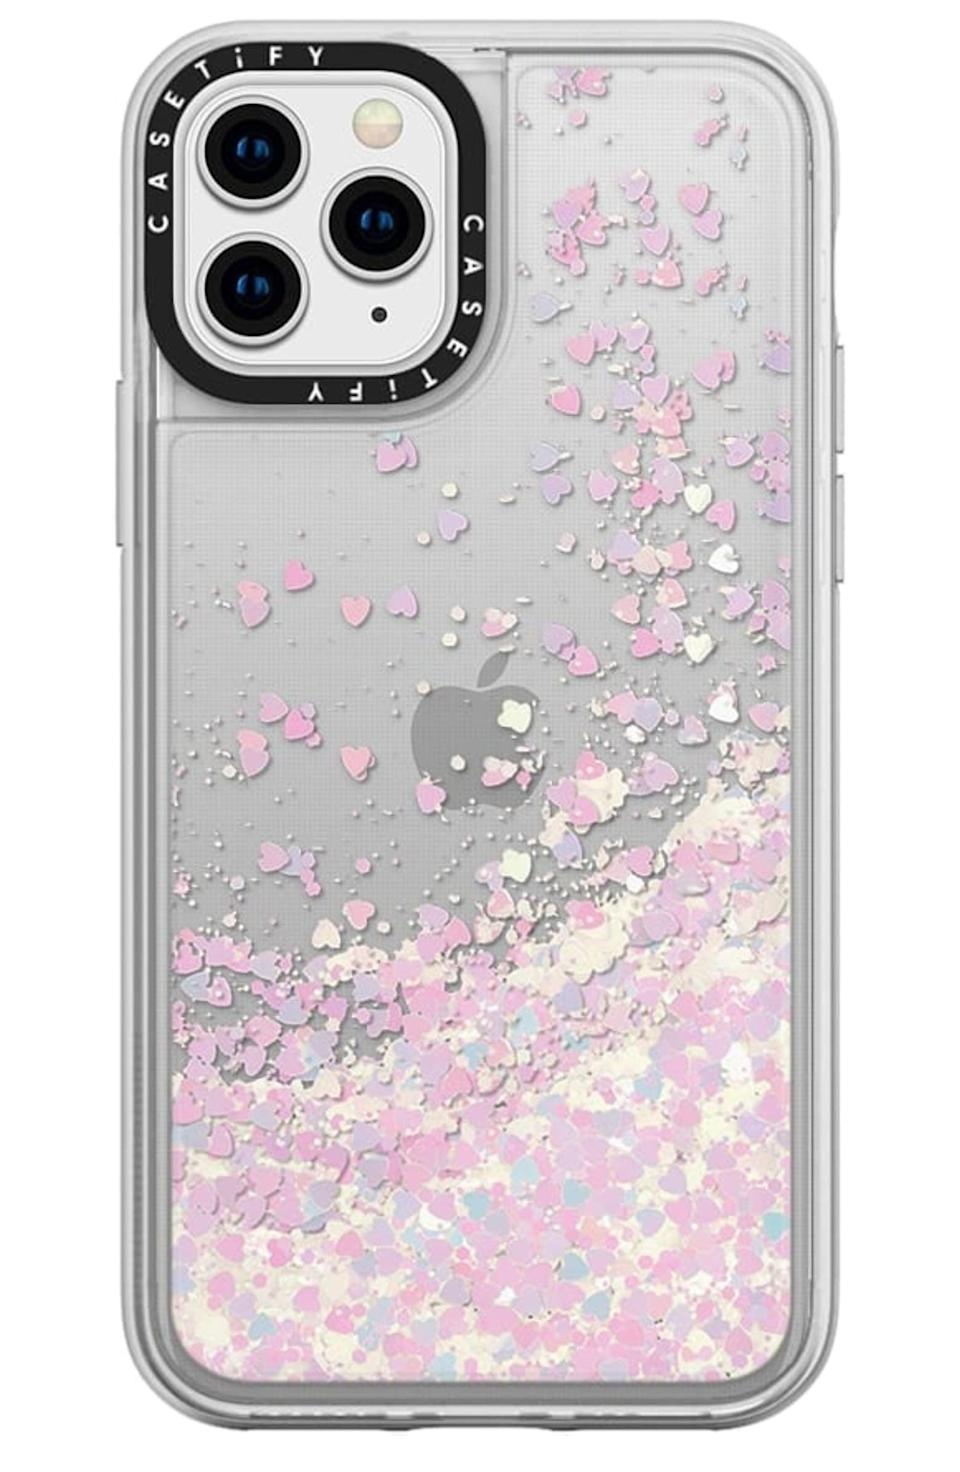 "<p>This <a href=""https://www.popsugar.com/buy/Casetify-Glitter-iPhone-1111-Pro11-Pro-Max-Case-532944?p_name=Casetify%20Glitter%20iPhone%2011%2F11%20Pro%2F11%20Pro%20Max%20Case&retailer=shop.nordstrom.com&pid=532944&price=45&evar1=fab%3Aus&evar9=36291197&evar98=https%3A%2F%2Fwww.popsugar.com%2Ffashion%2Fphoto-gallery%2F36291197%2Fimage%2F47027891%2FCasetify-Glitter-iPhone-1111-Pro11-Pro-Max-Case&list1=shopping%2Choliday%2Cwinter%2Cgift%20guide%2Cwinter%20fashion%2Choliday%20fashion%2Cfashion%20gifts&prop13=api&pdata=1"" rel=""nofollow noopener"" class=""link rapid-noclick-resp"" target=""_blank"" data-ylk=""slk:Casetify Glitter iPhone 11/11 Pro/11 Pro Max Case"">Casetify Glitter iPhone 11/11 Pro/11 Pro Max Case</a> ($45) is so cute.</p>"